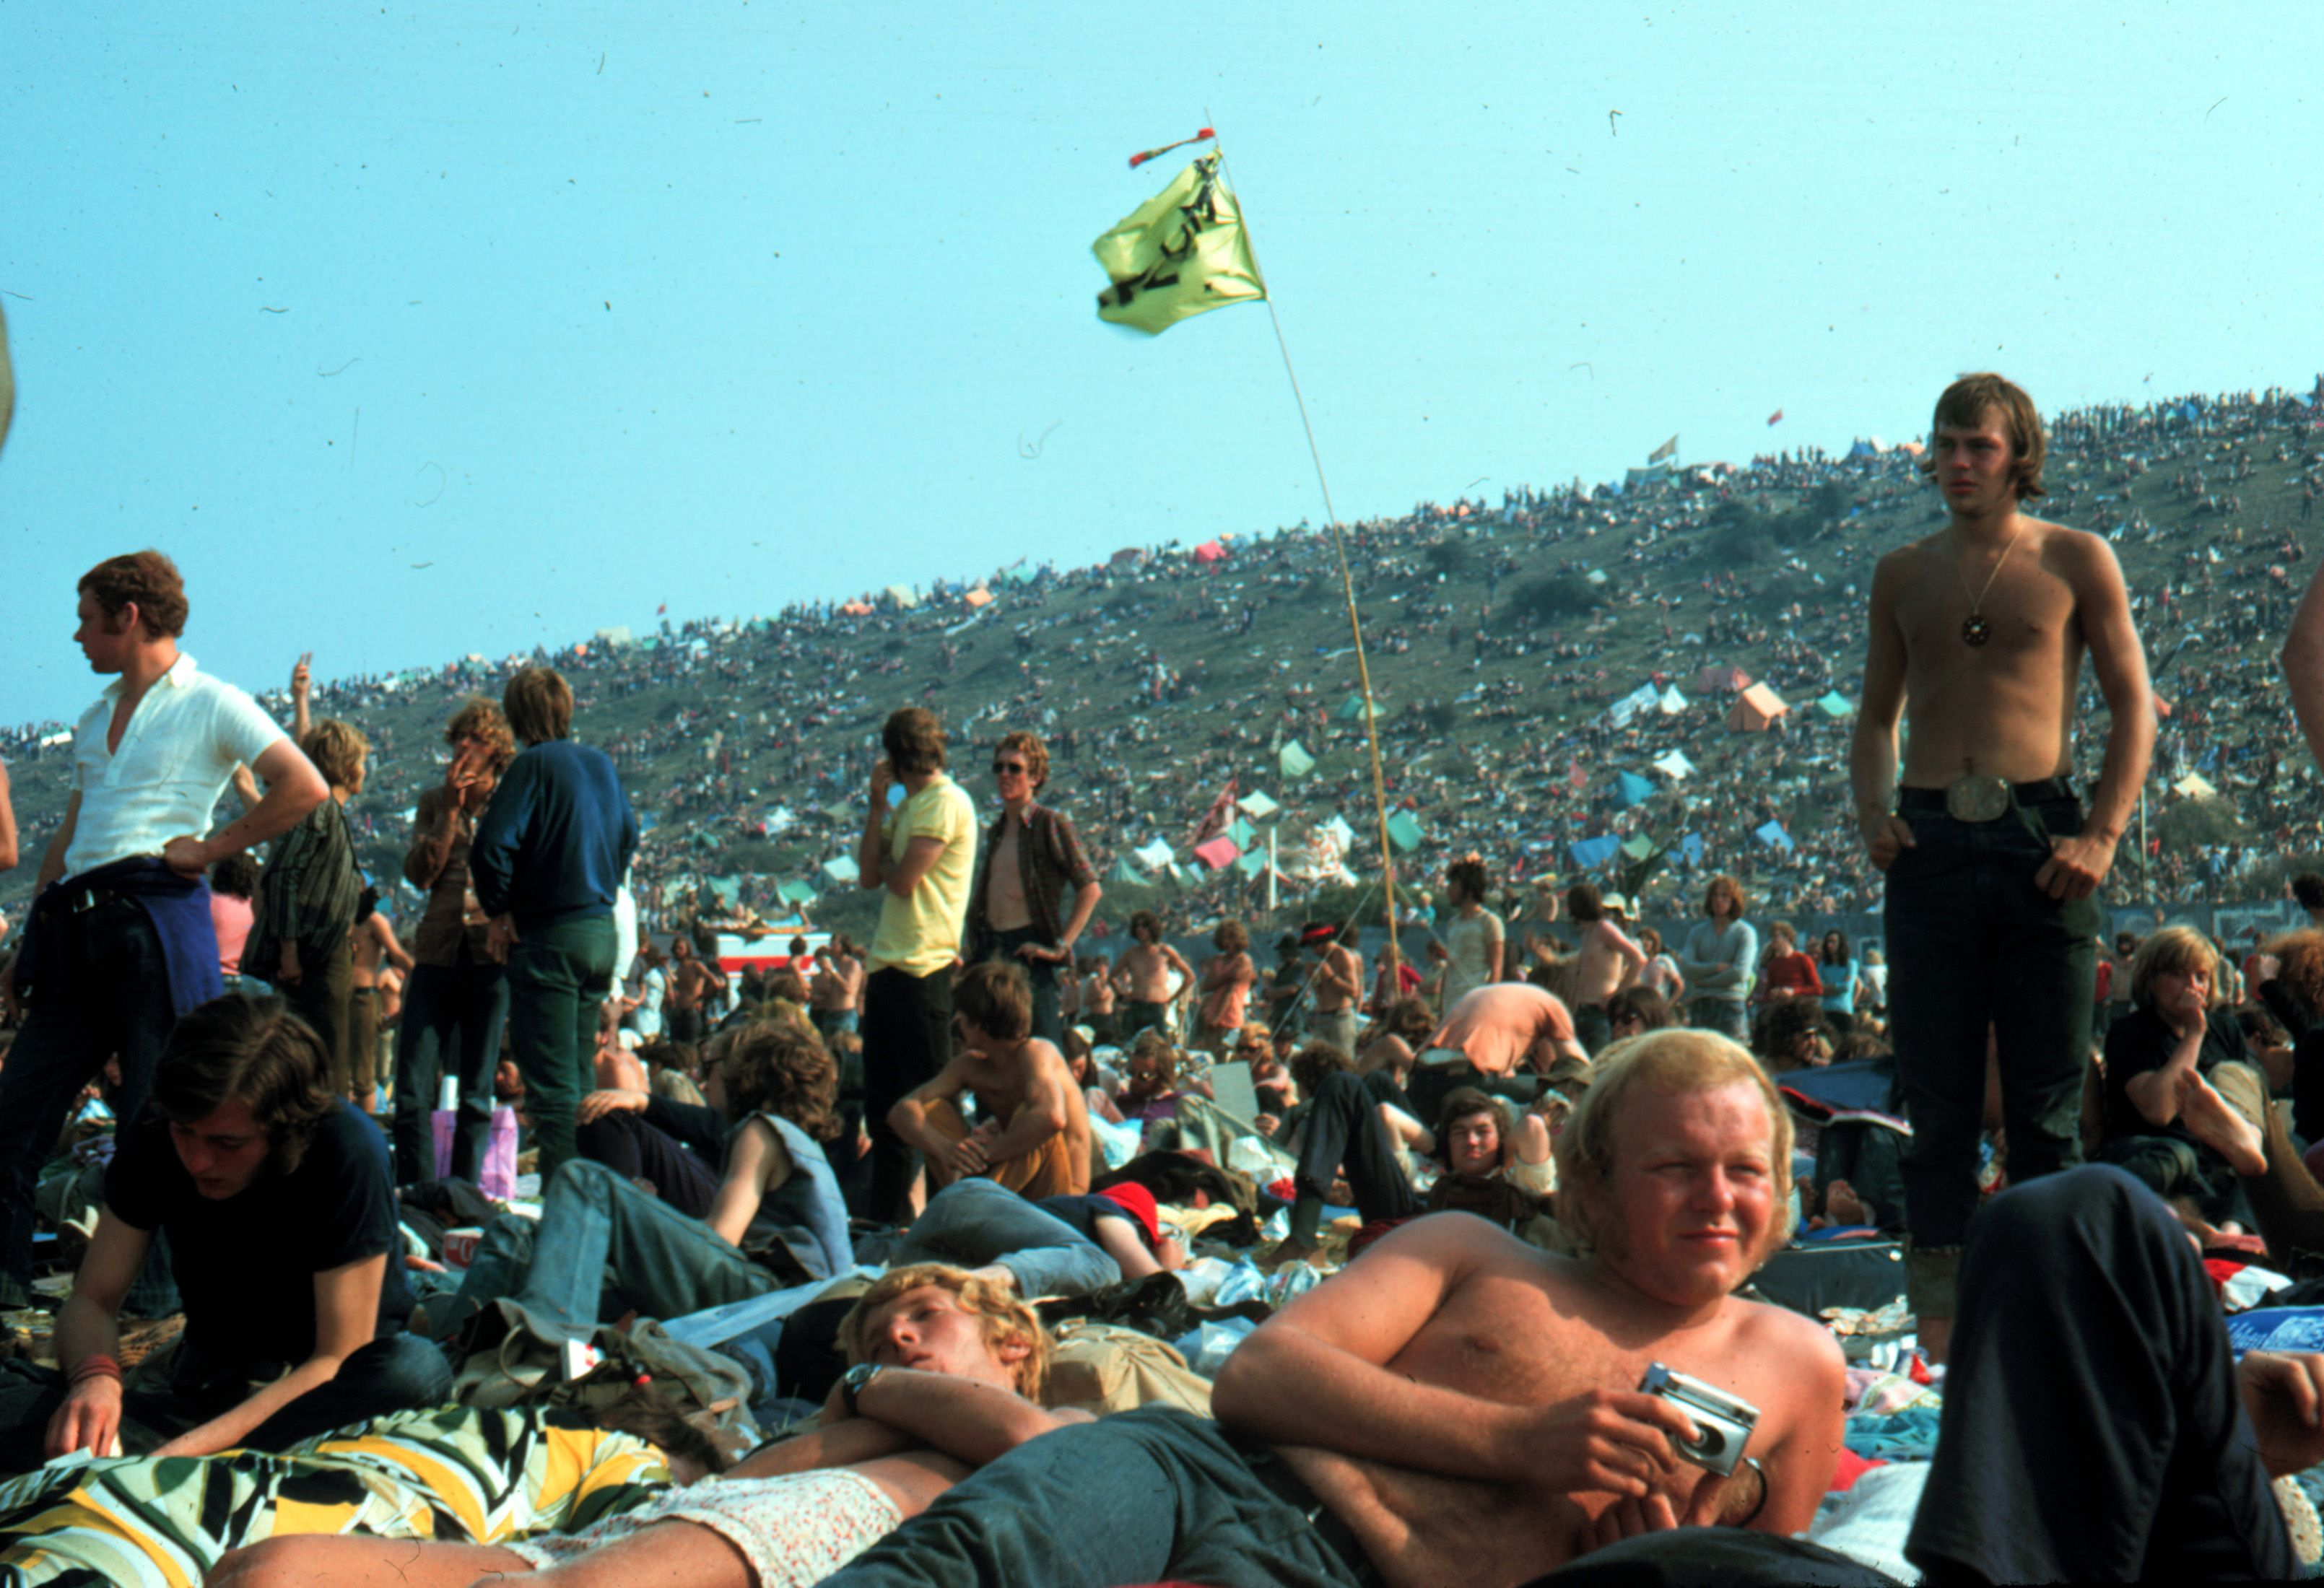 1970 Isle Of Wight Festival The Isle Of Wight Festival Is One Steeped In Music History As Is Duly Not Isle Of Wight Festival Festivals In England Woodstock